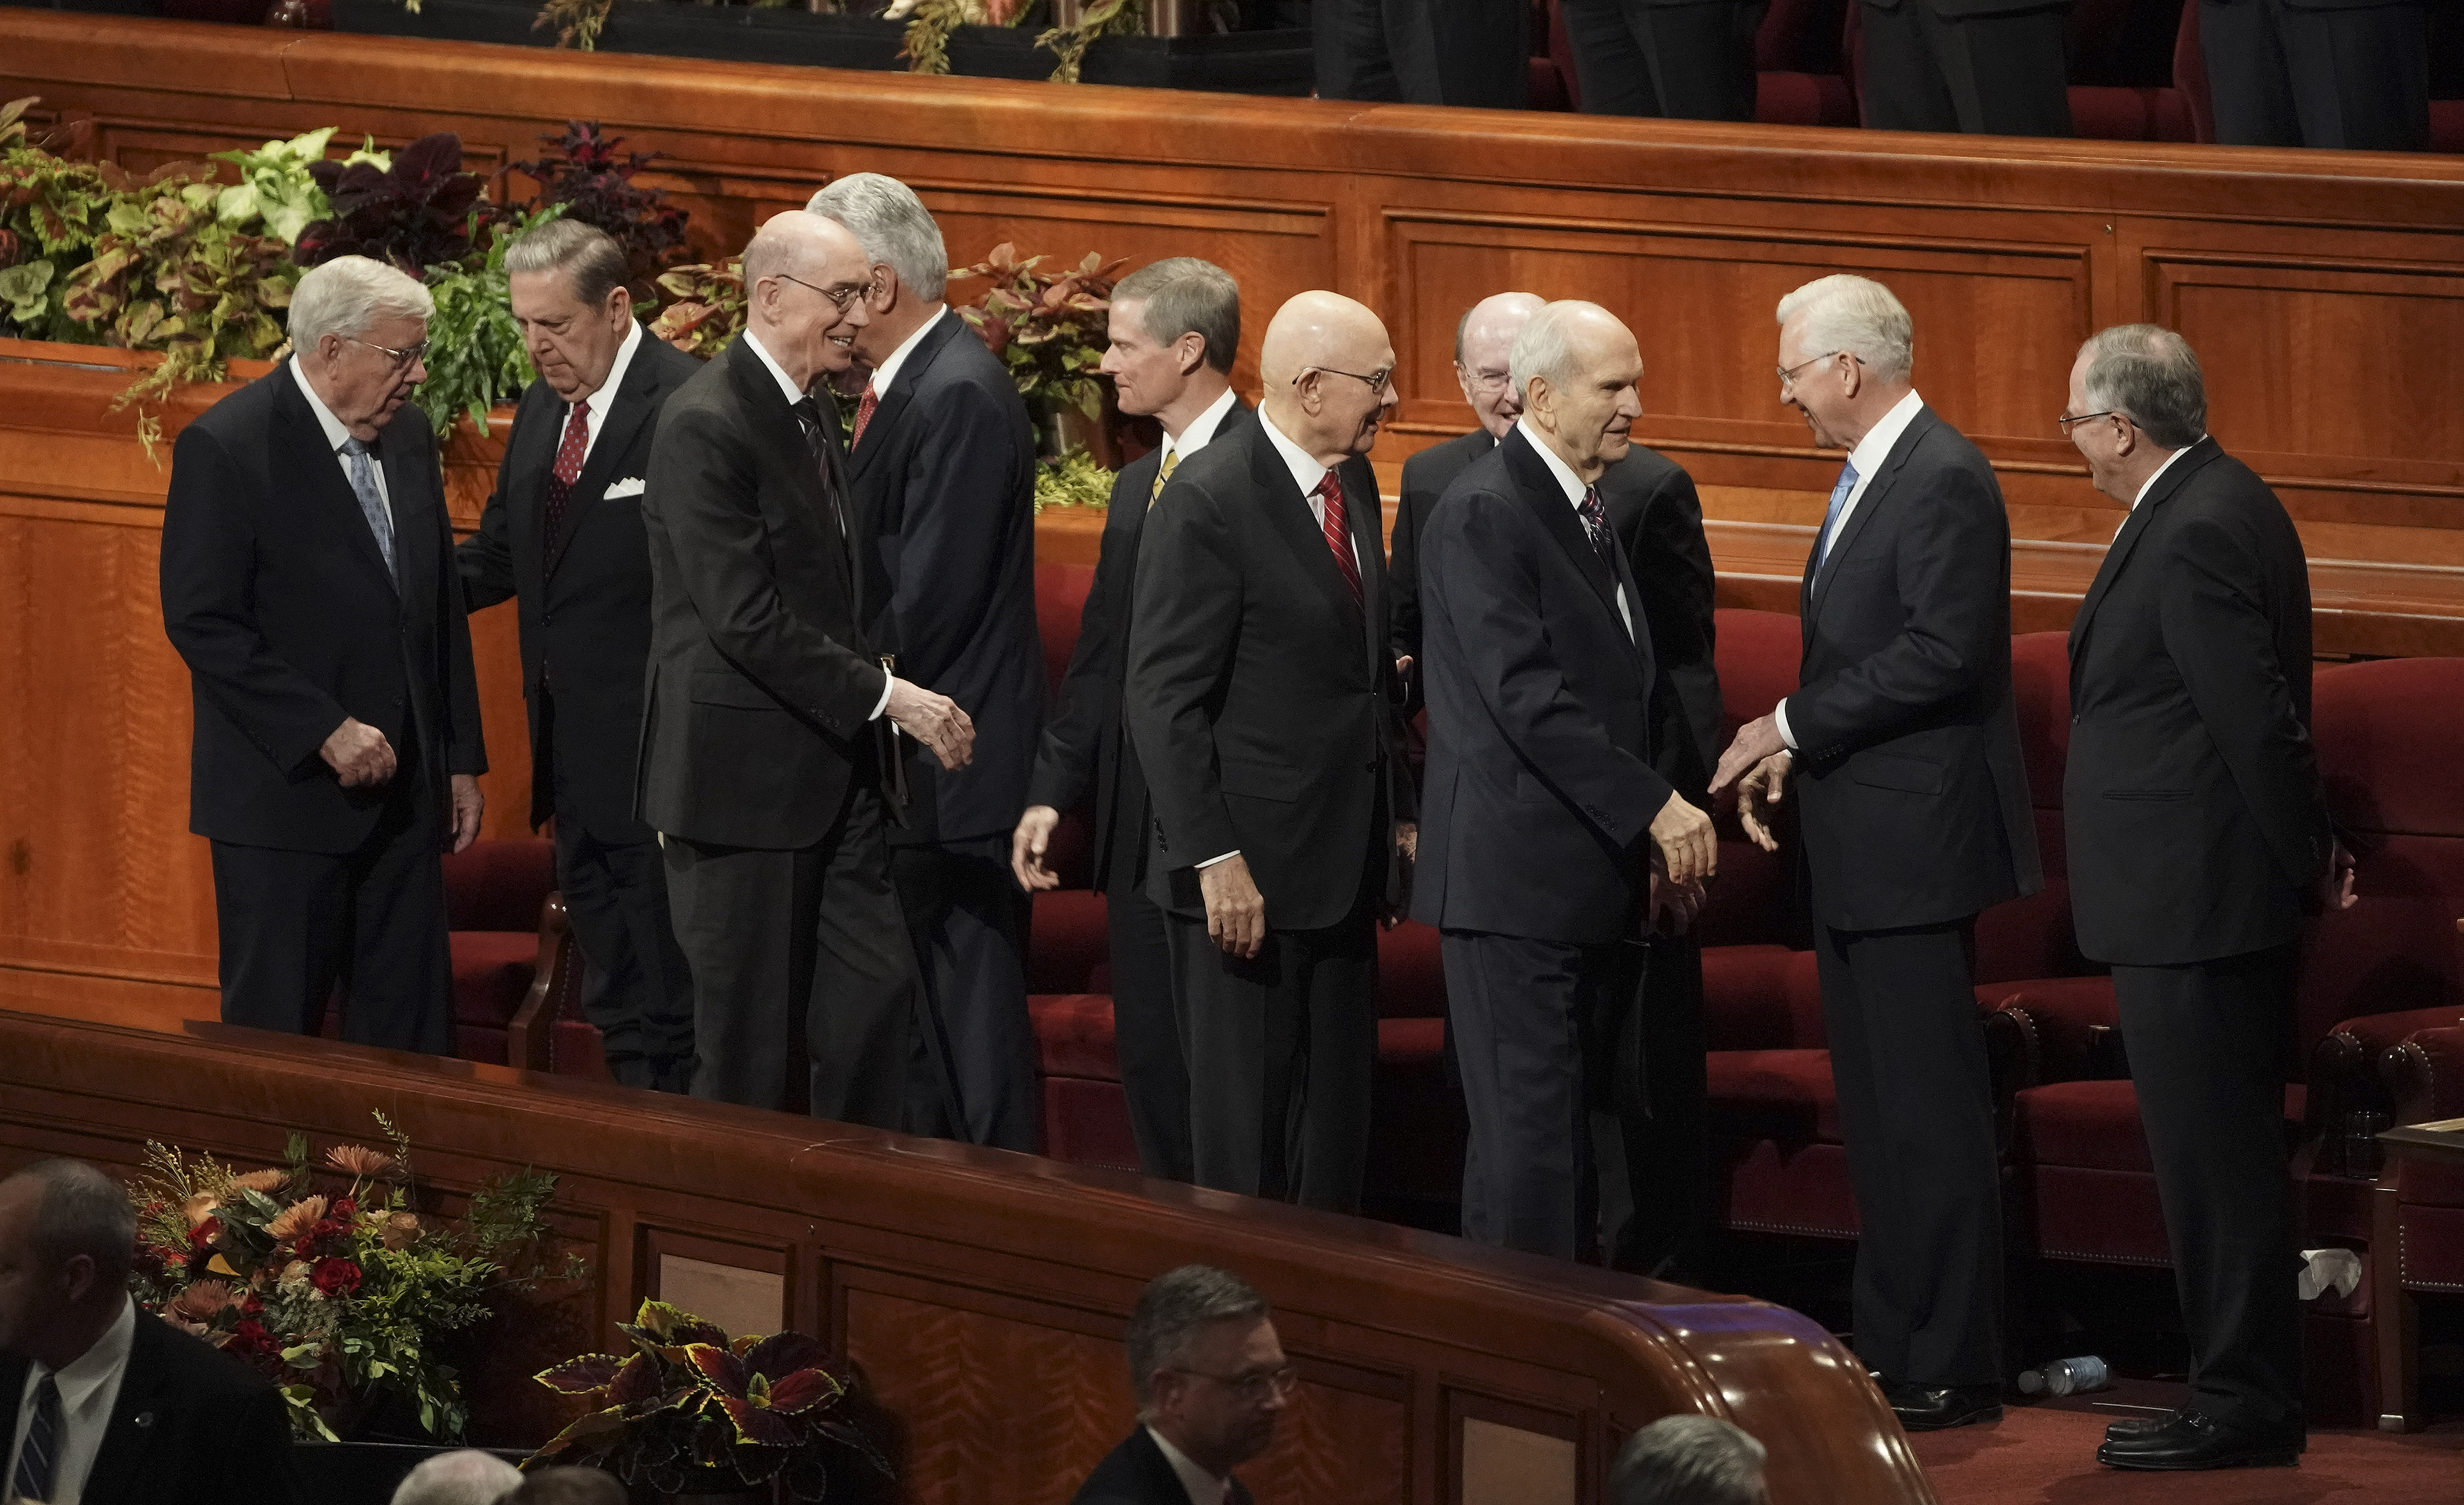 President Russell M. Nelson of The Church of Jesus Christ of Latter-day Saints, and his counselors, President Dallin H. Oaks, first counselor in the First Presidency, and President Henry B. Eyring, second counselor in the First Presidency, shakes hands after the Saturday morning session of the faith's 189th Semiannual General Conference in the Conference Center in Salt Lake City on Saturday, Oct. 5, 2019.